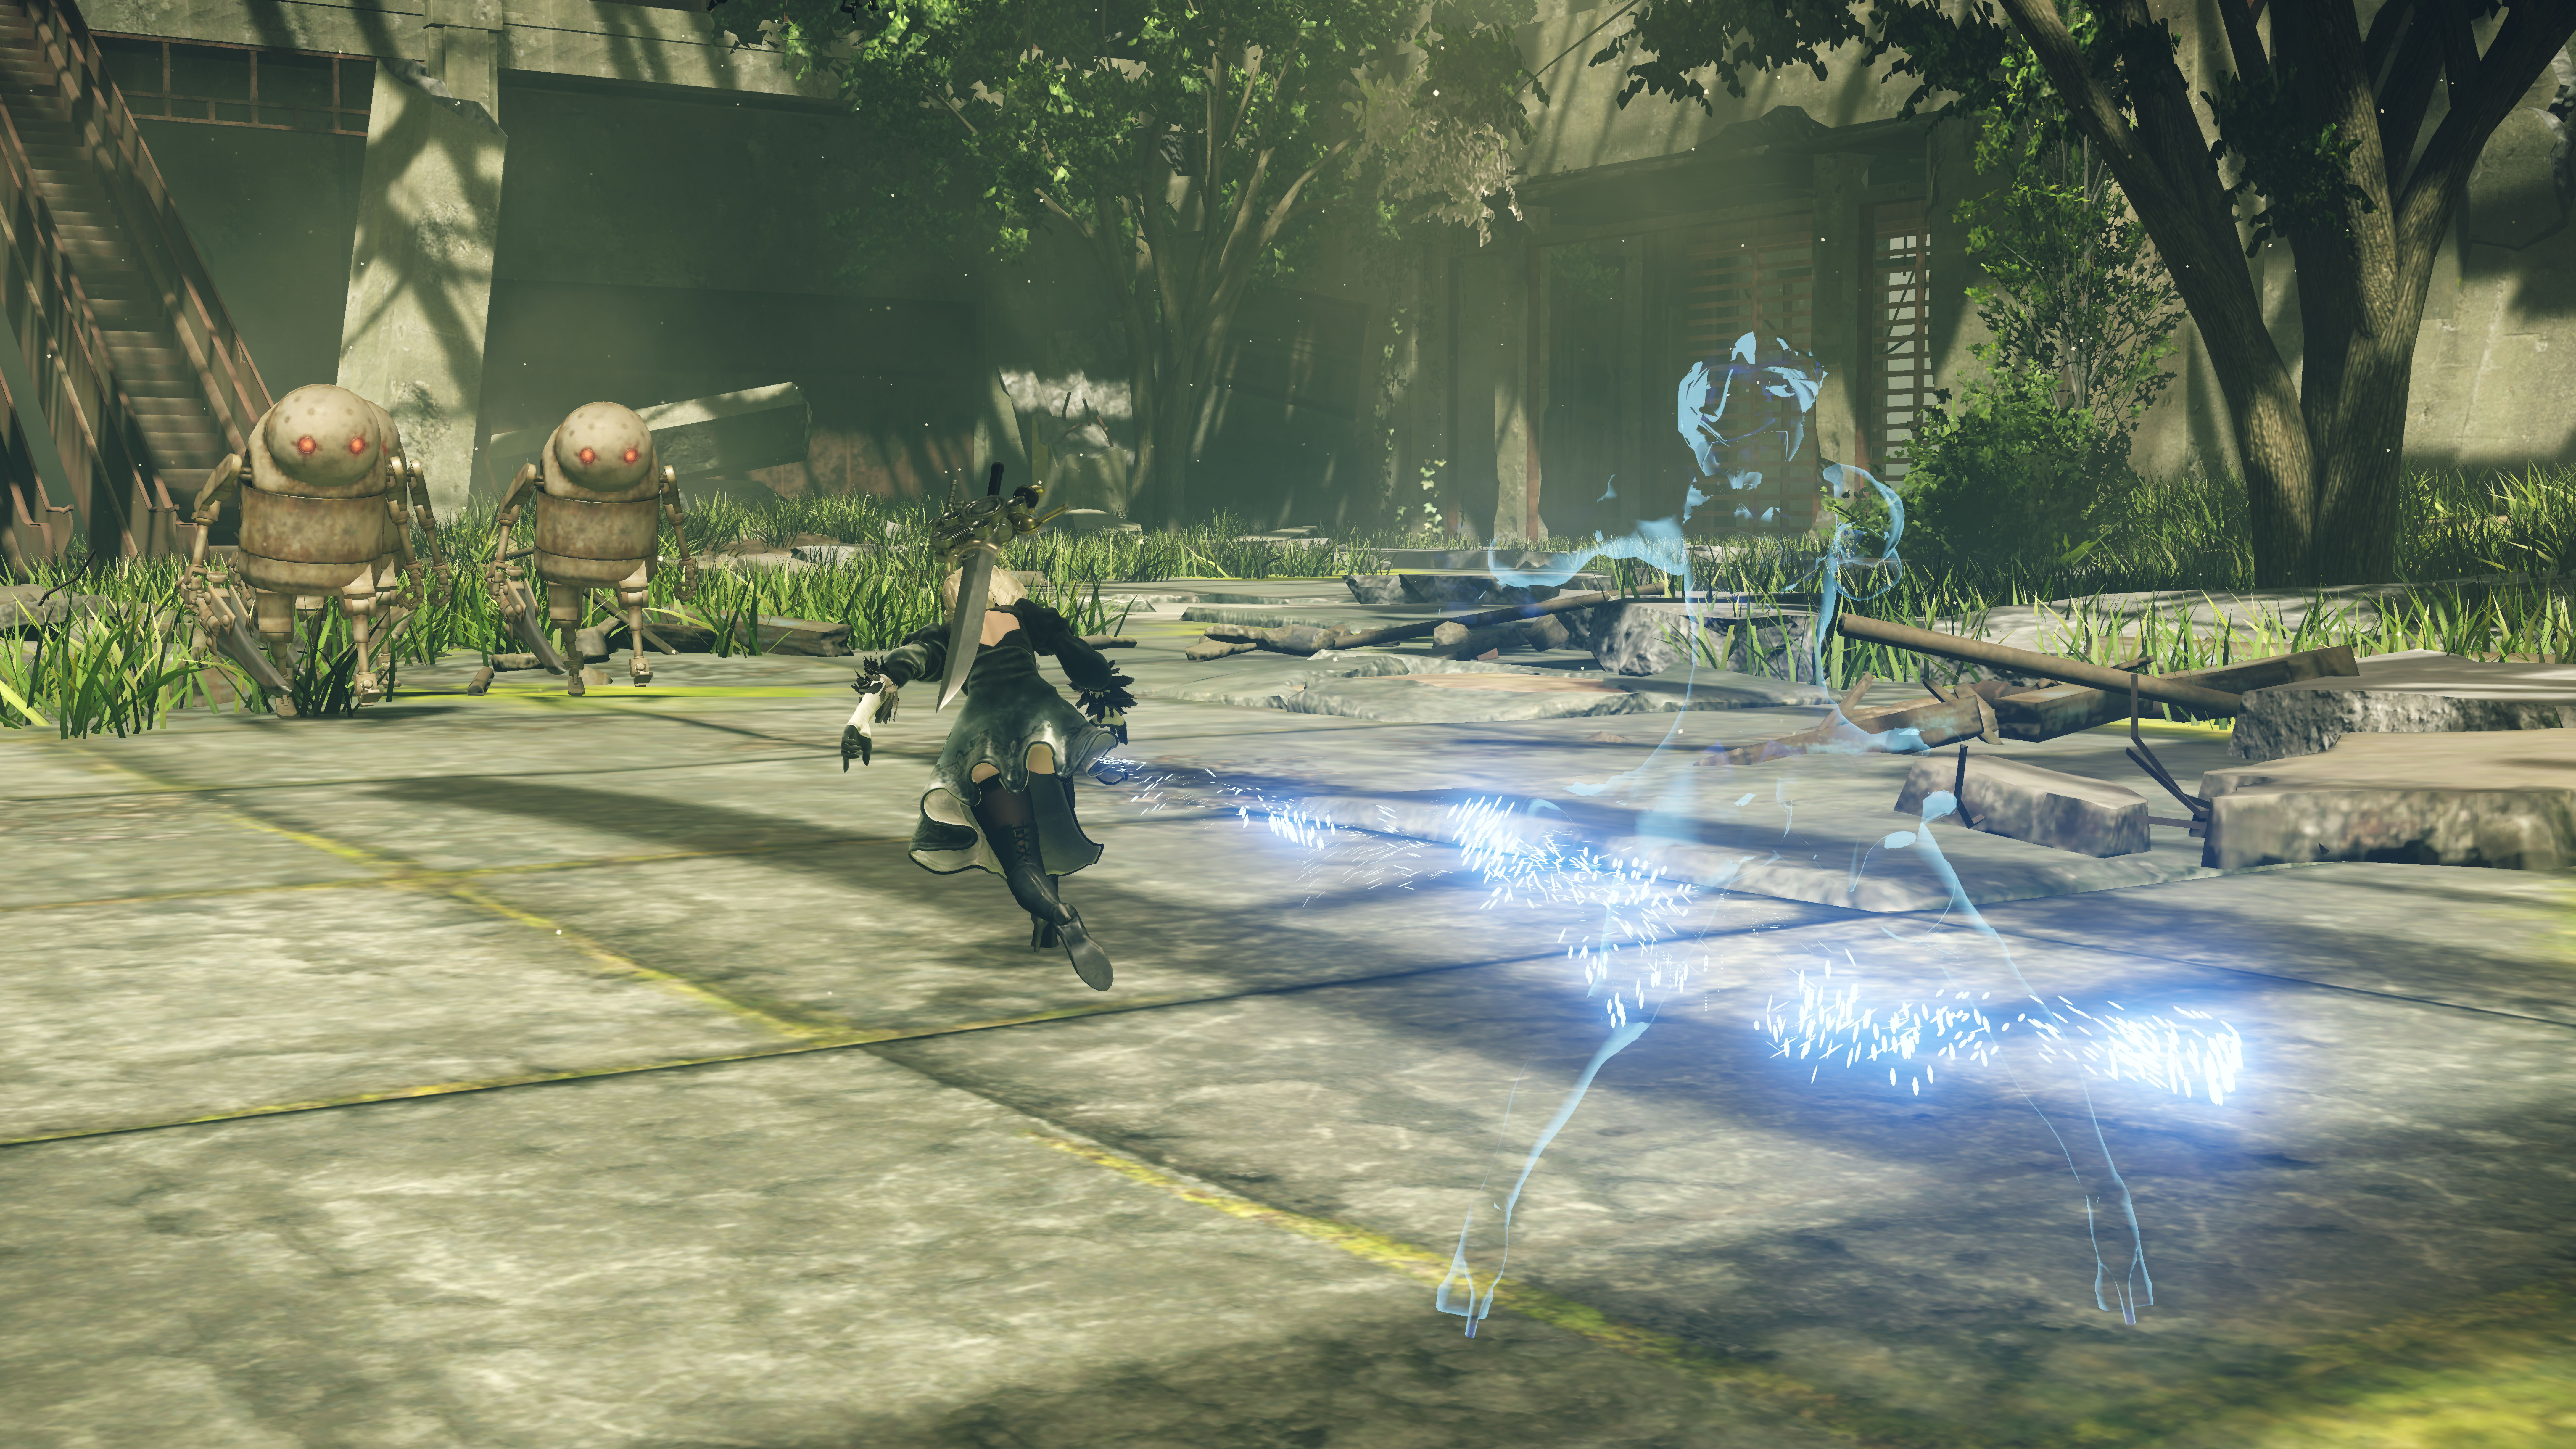 Final Fantasy 15 Engine Blade comes to NieR: Automata